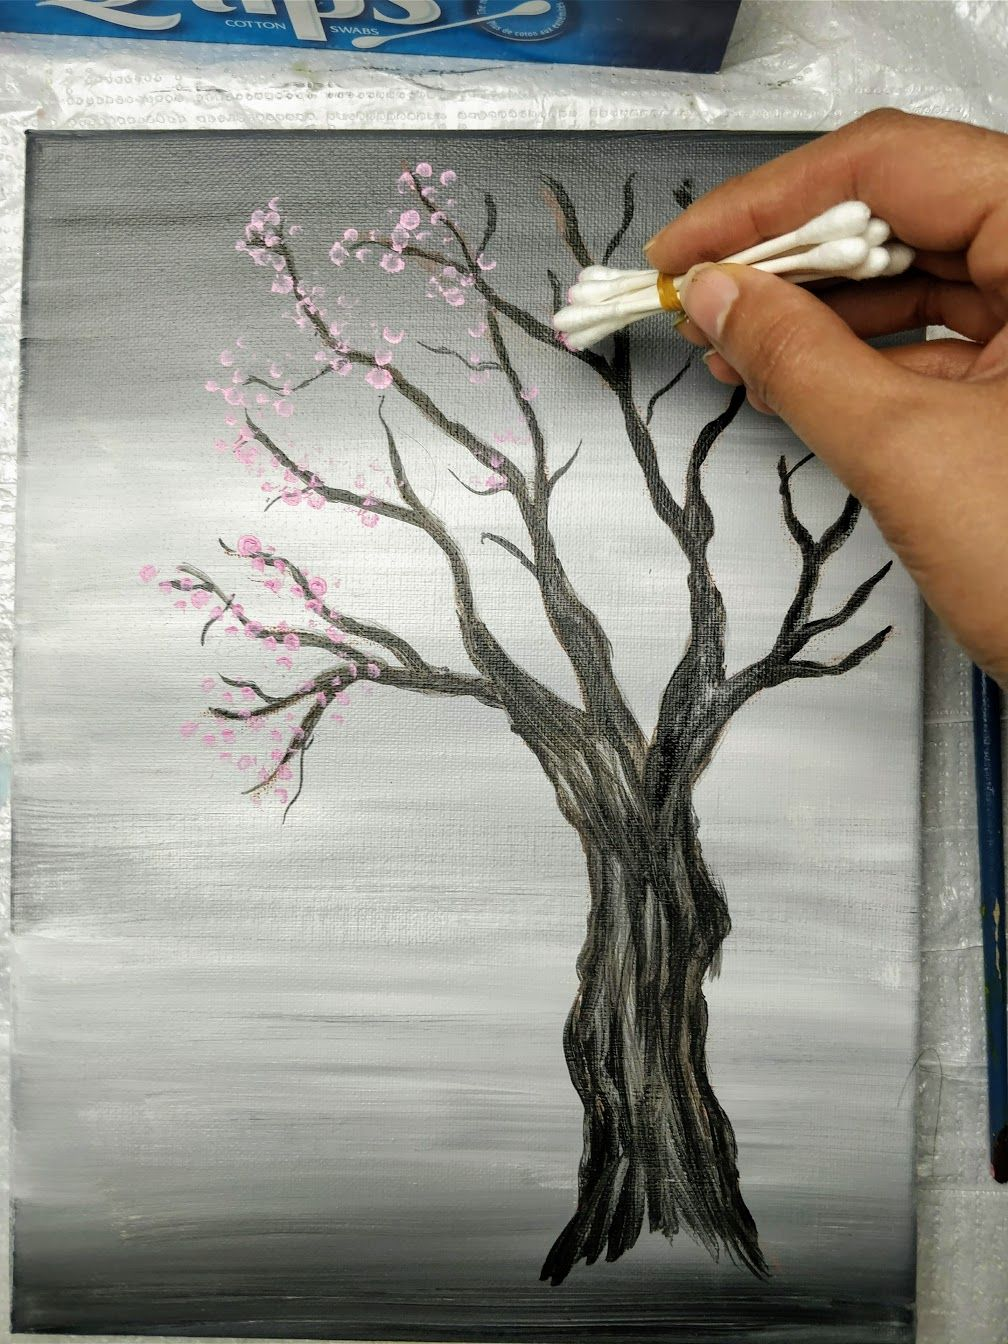 Painting a Cherry Blossom Tree with Acrylics and C